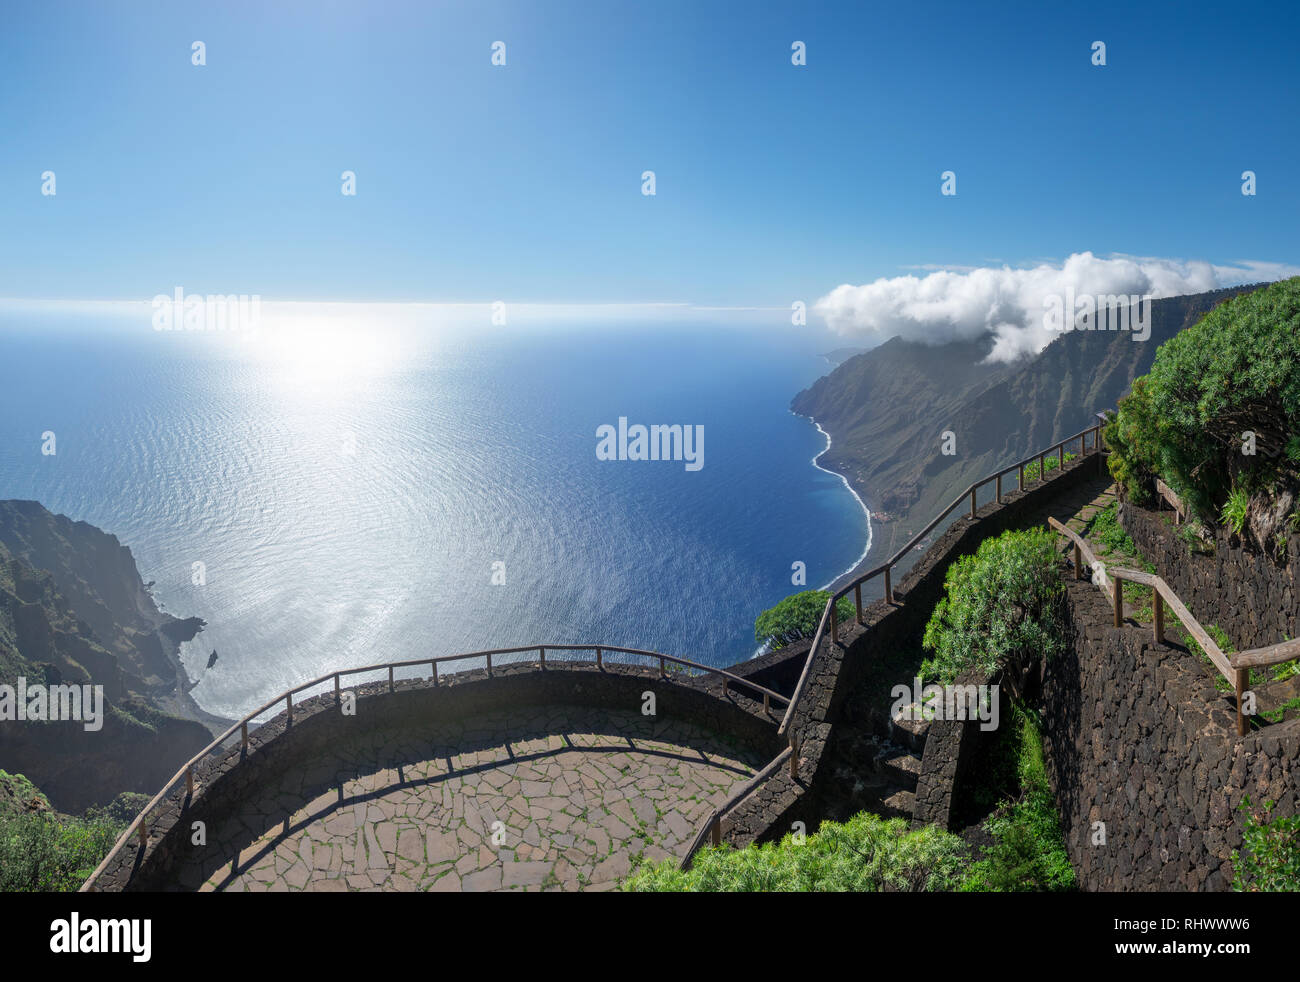 Viewpoint Mirador de Isora - El Hierro, Canary Islands - Stock Image